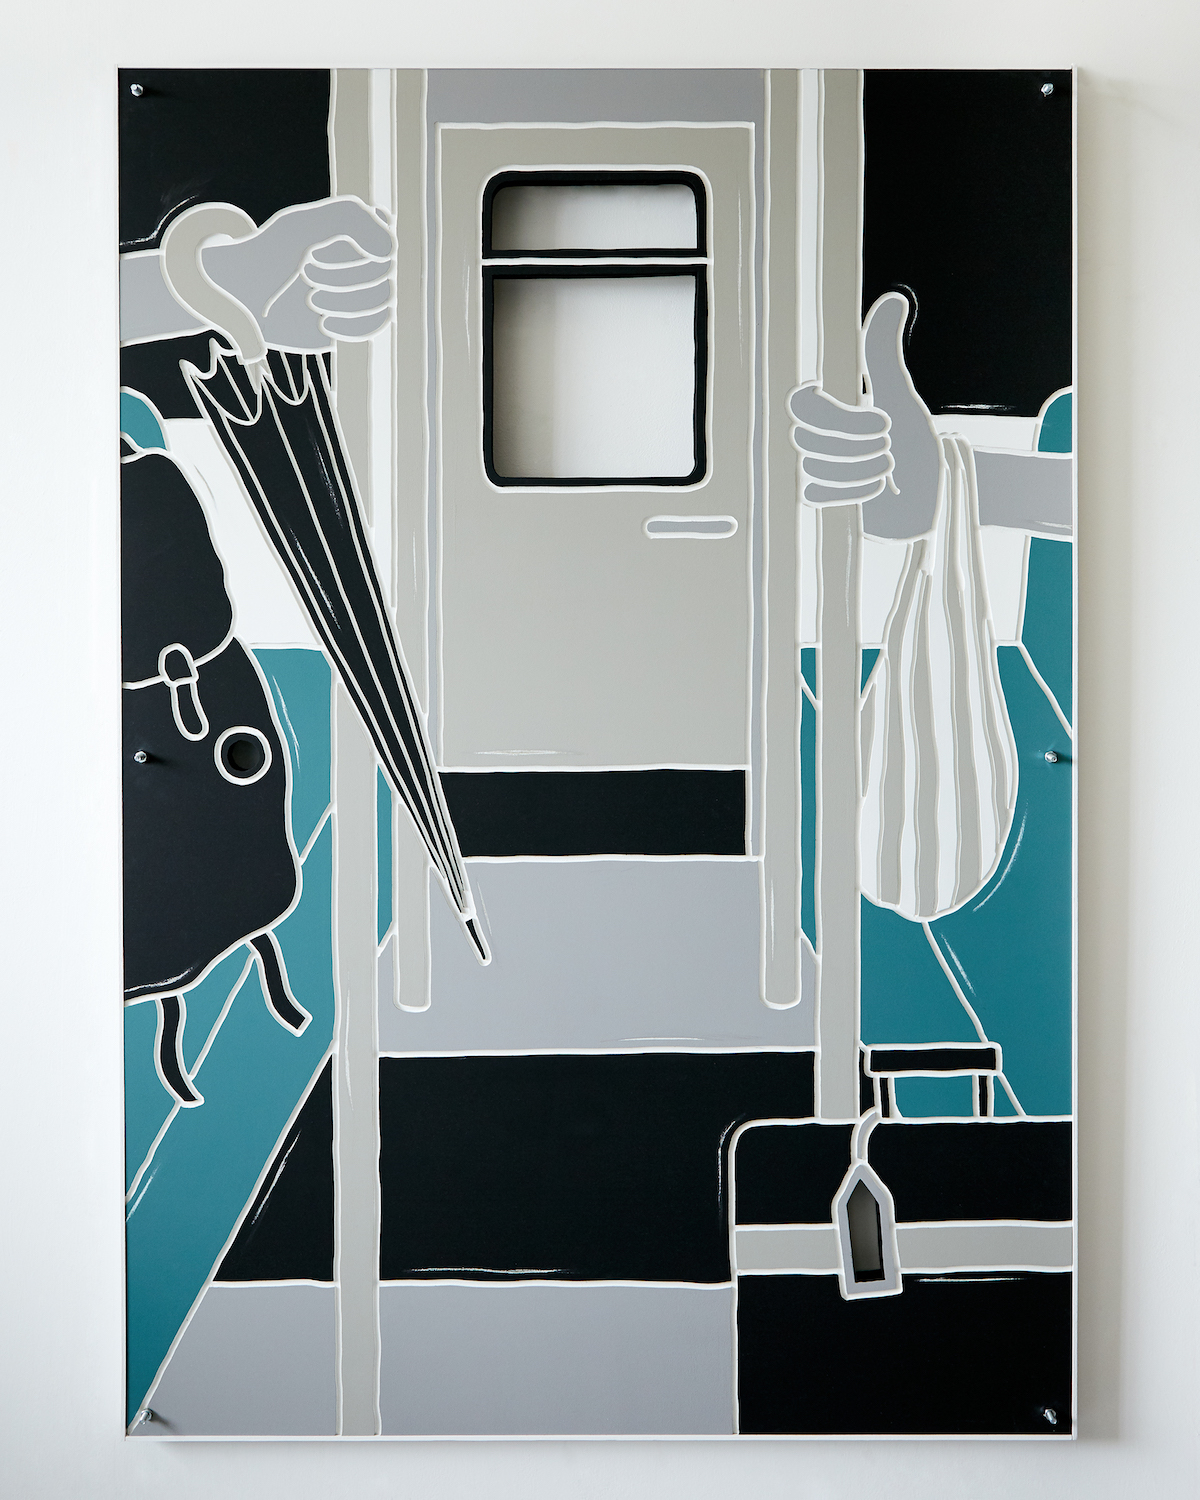 Milly Peck, Standing Passengers, 2020. Emulsion on wood, LED lights, bolts. 131 x 91 x 4 cm.